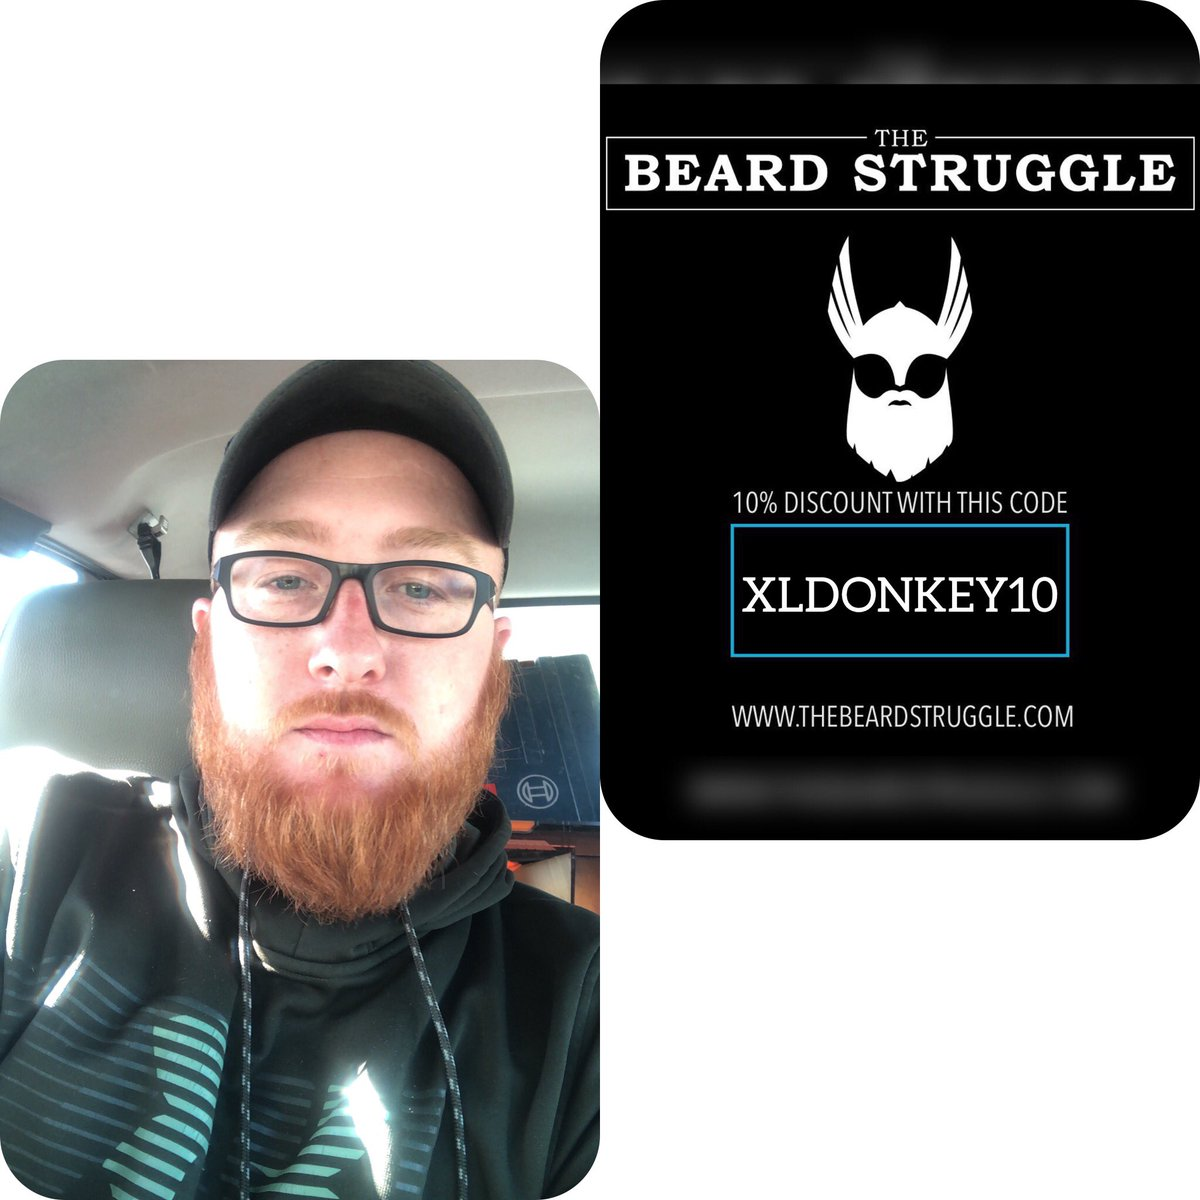 No matter how long or thick your beard is, The Beard Struggle's products will keep you beard clean and healthy!!   #thebeardstruggle #brandviking #beardedmen #beardlife #beardsoftwitter #BeardGang #BEARDSpic.twitter.com/06plS31aMR